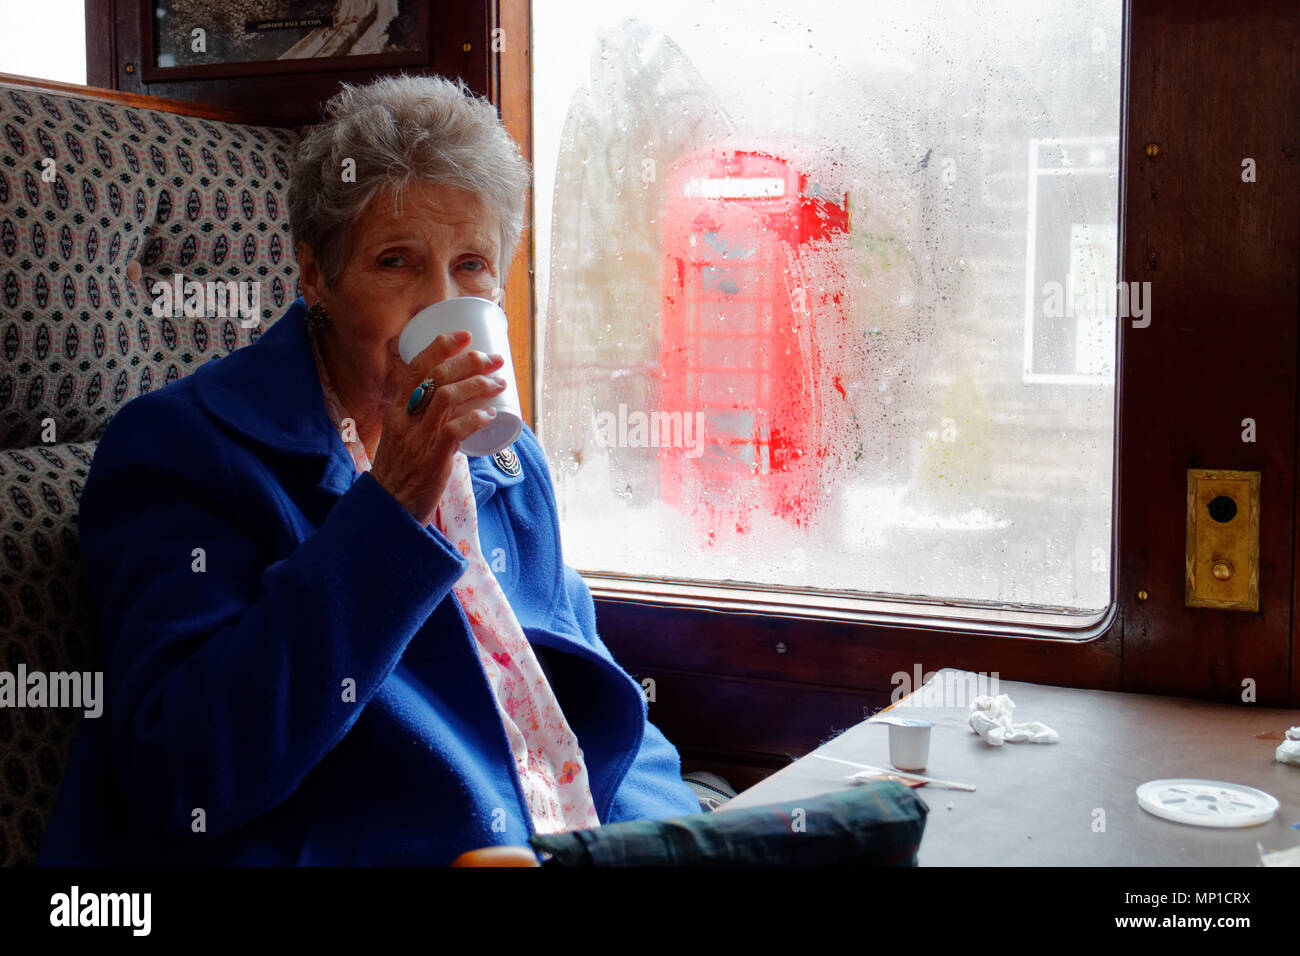 An older woman drinking tea on the Peak Rail steam train on a rainy day in in Bakewell, Derbyshire with a red phone box outside - Stock Image